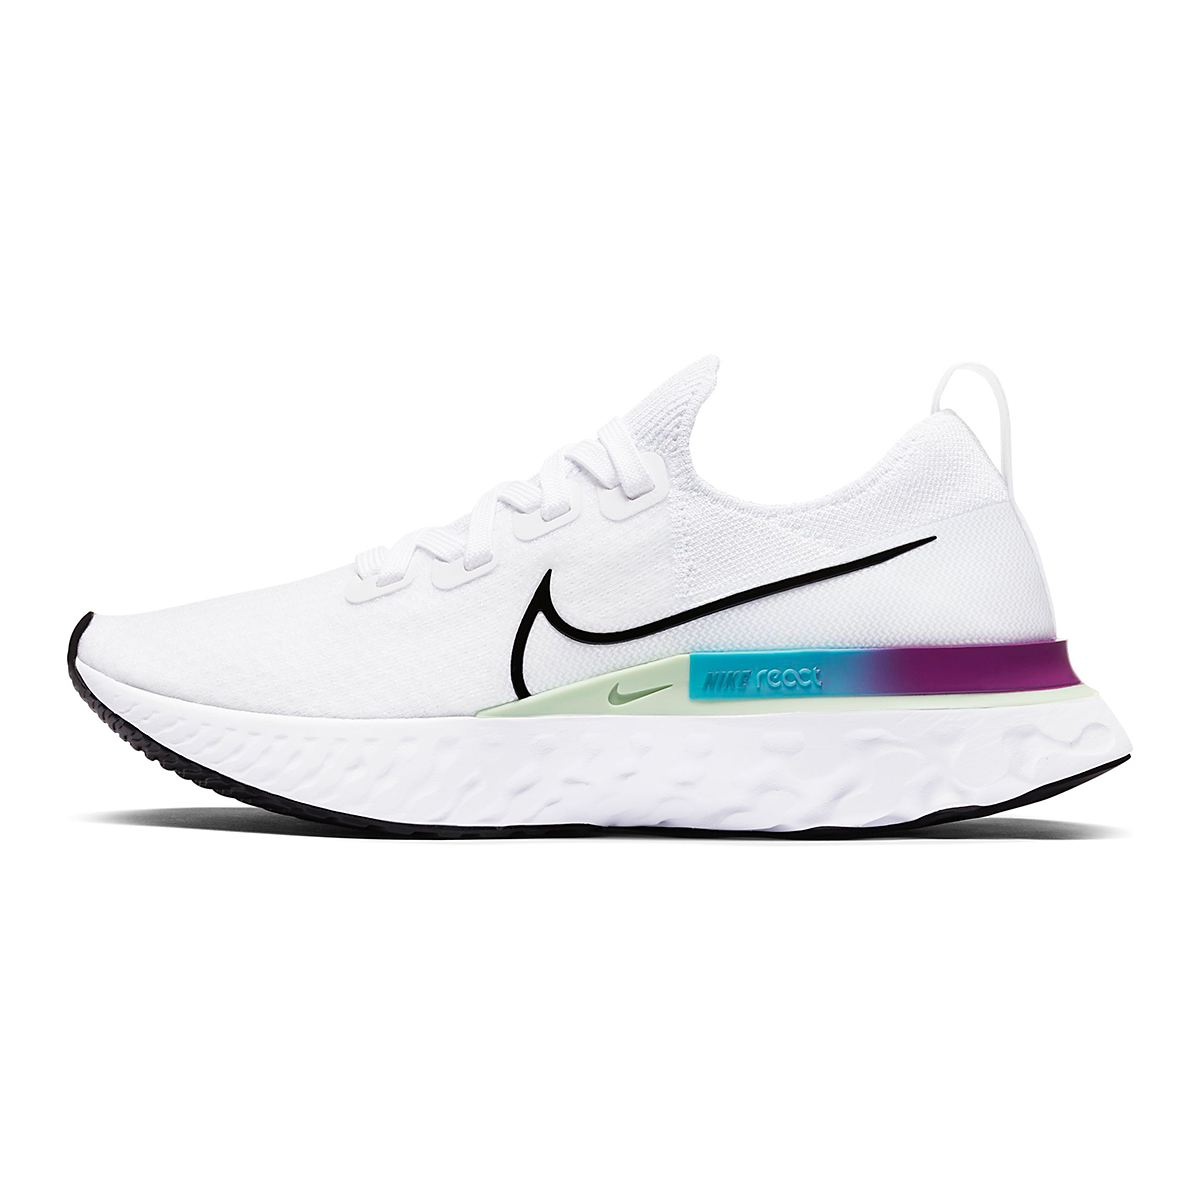 Women's Nike React Infinity Run Flyknit Running Shoes - Color: White/Vapor Green/Oracle Aqua/Black - Size: 5 - Width: Regular, White/Vapor Green/Oracle Aqua/Black, large, image 3